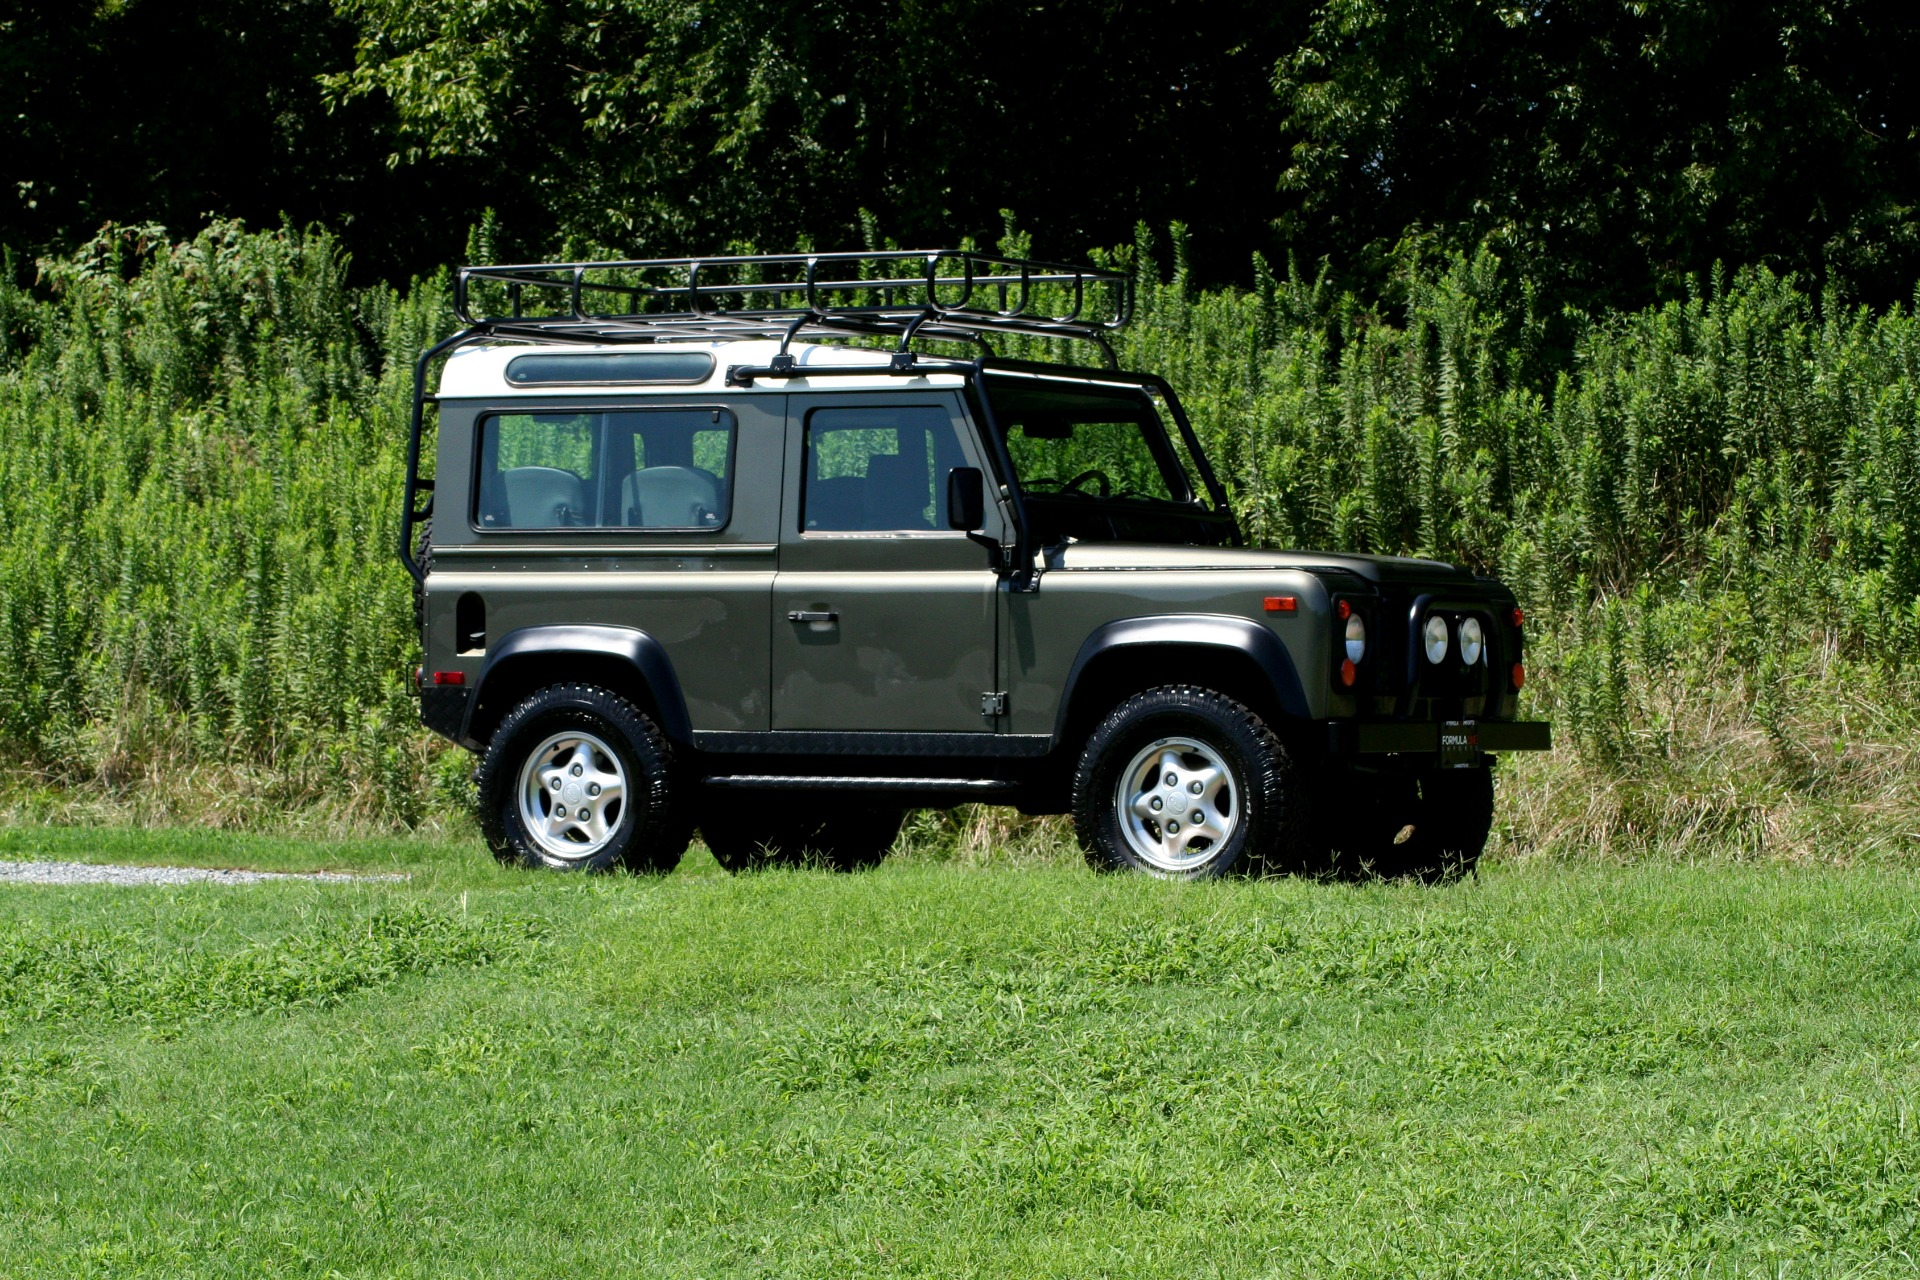 Used 1997 Land Rover DEFENDER 90 LIMITED EDITION / HARD-TOP / 4WD / FULLY RESTORED / LOW MILES for sale $129,999 at Formula Imports in Charlotte NC 28227 12